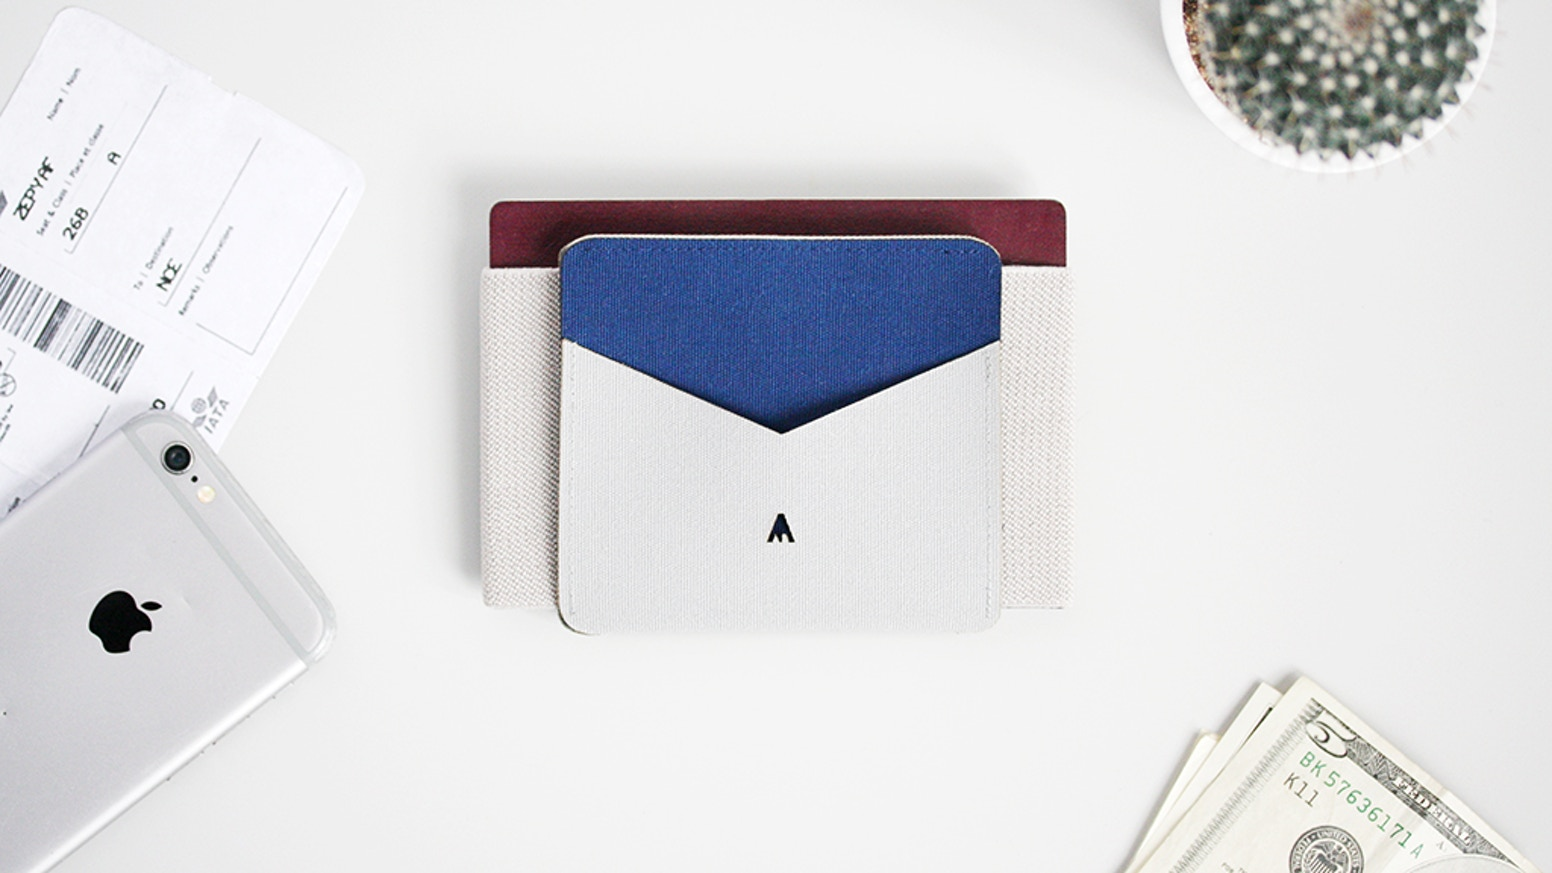 The best reversible wallet that changes color in a snap. Suitable. Minimaliste. Durable.